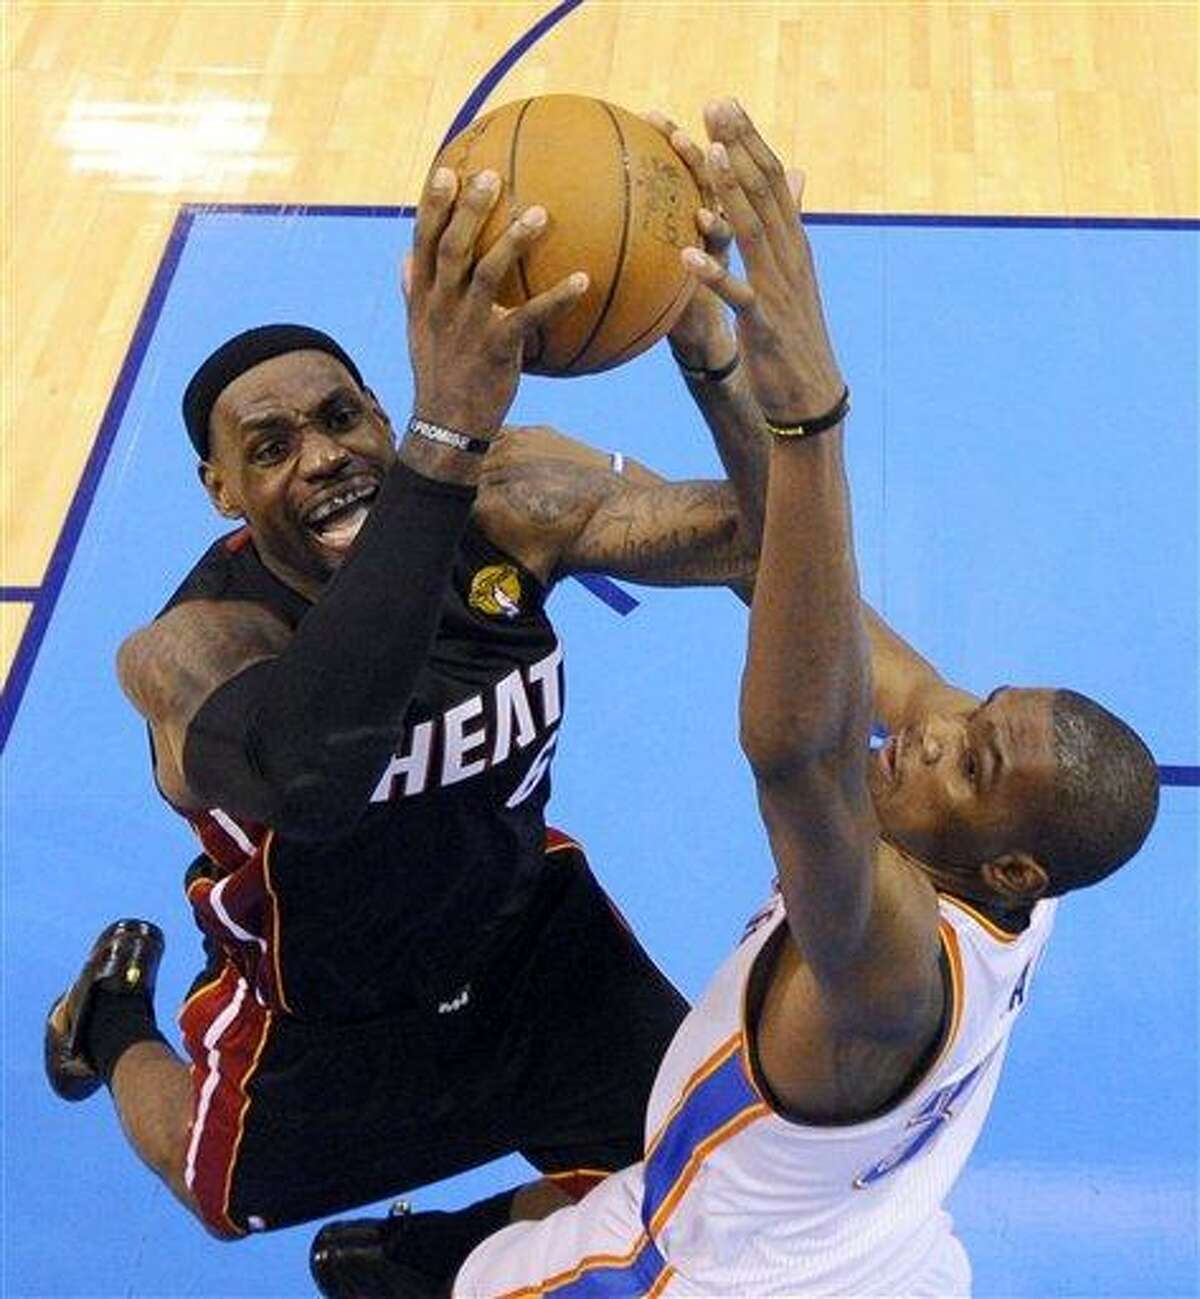 Miami Heat small forward LeBron James is defended by Oklahoma City Thunder small forward Kevin Durant (35) during the second half at Game 2 of the NBA finals basketball series, Thursday, June 14, 2012, in Oklahoma City. The Heat won 100-96. (AP Photo/Larry W. Smith, Pool)